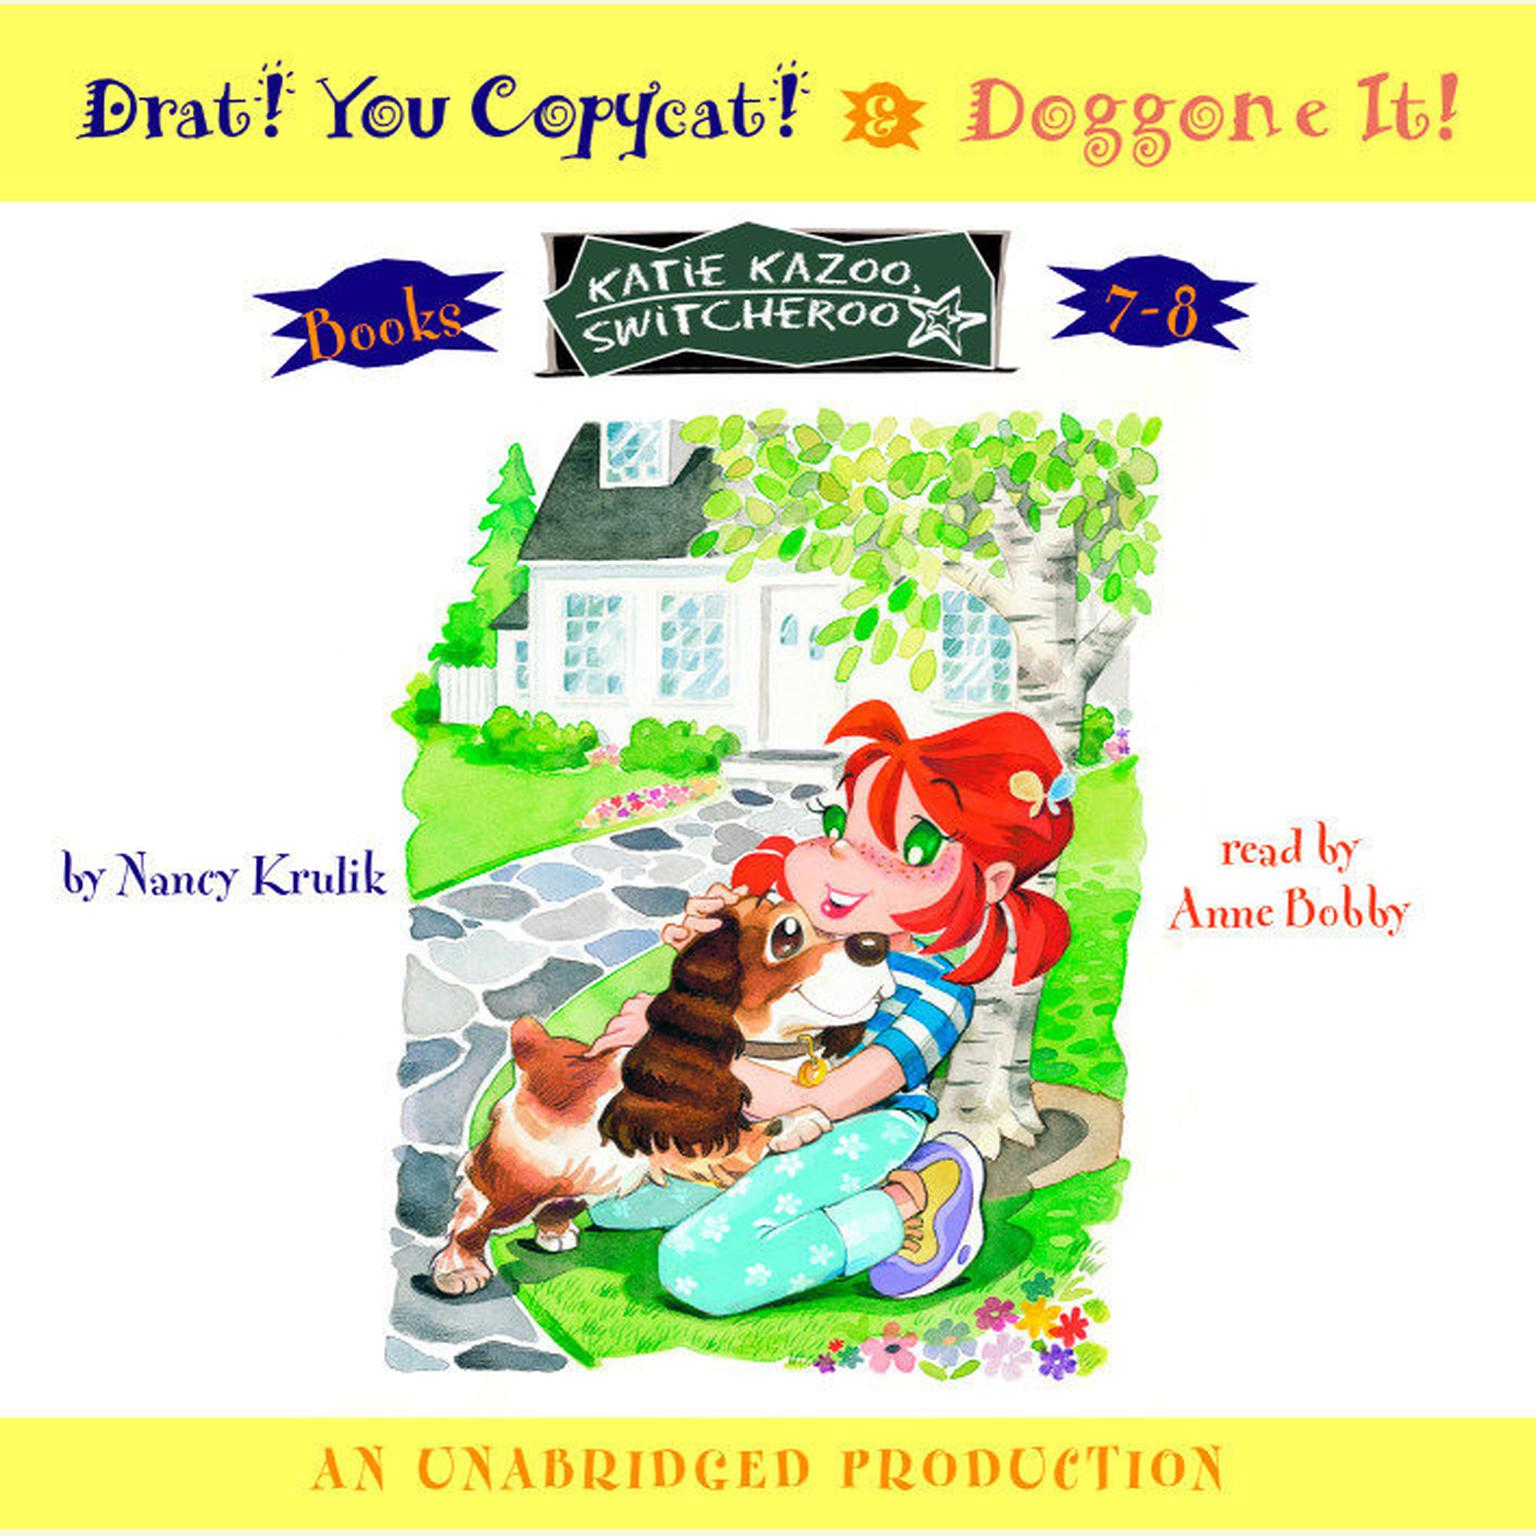 Printable Katie Kazoo: Books 7 and 8: Katie Kazoo, Switcheroo #7: Drat! You Copycat!; Katie Kazoo, Switcheroo #8: Doggone It! Audiobook Cover Art